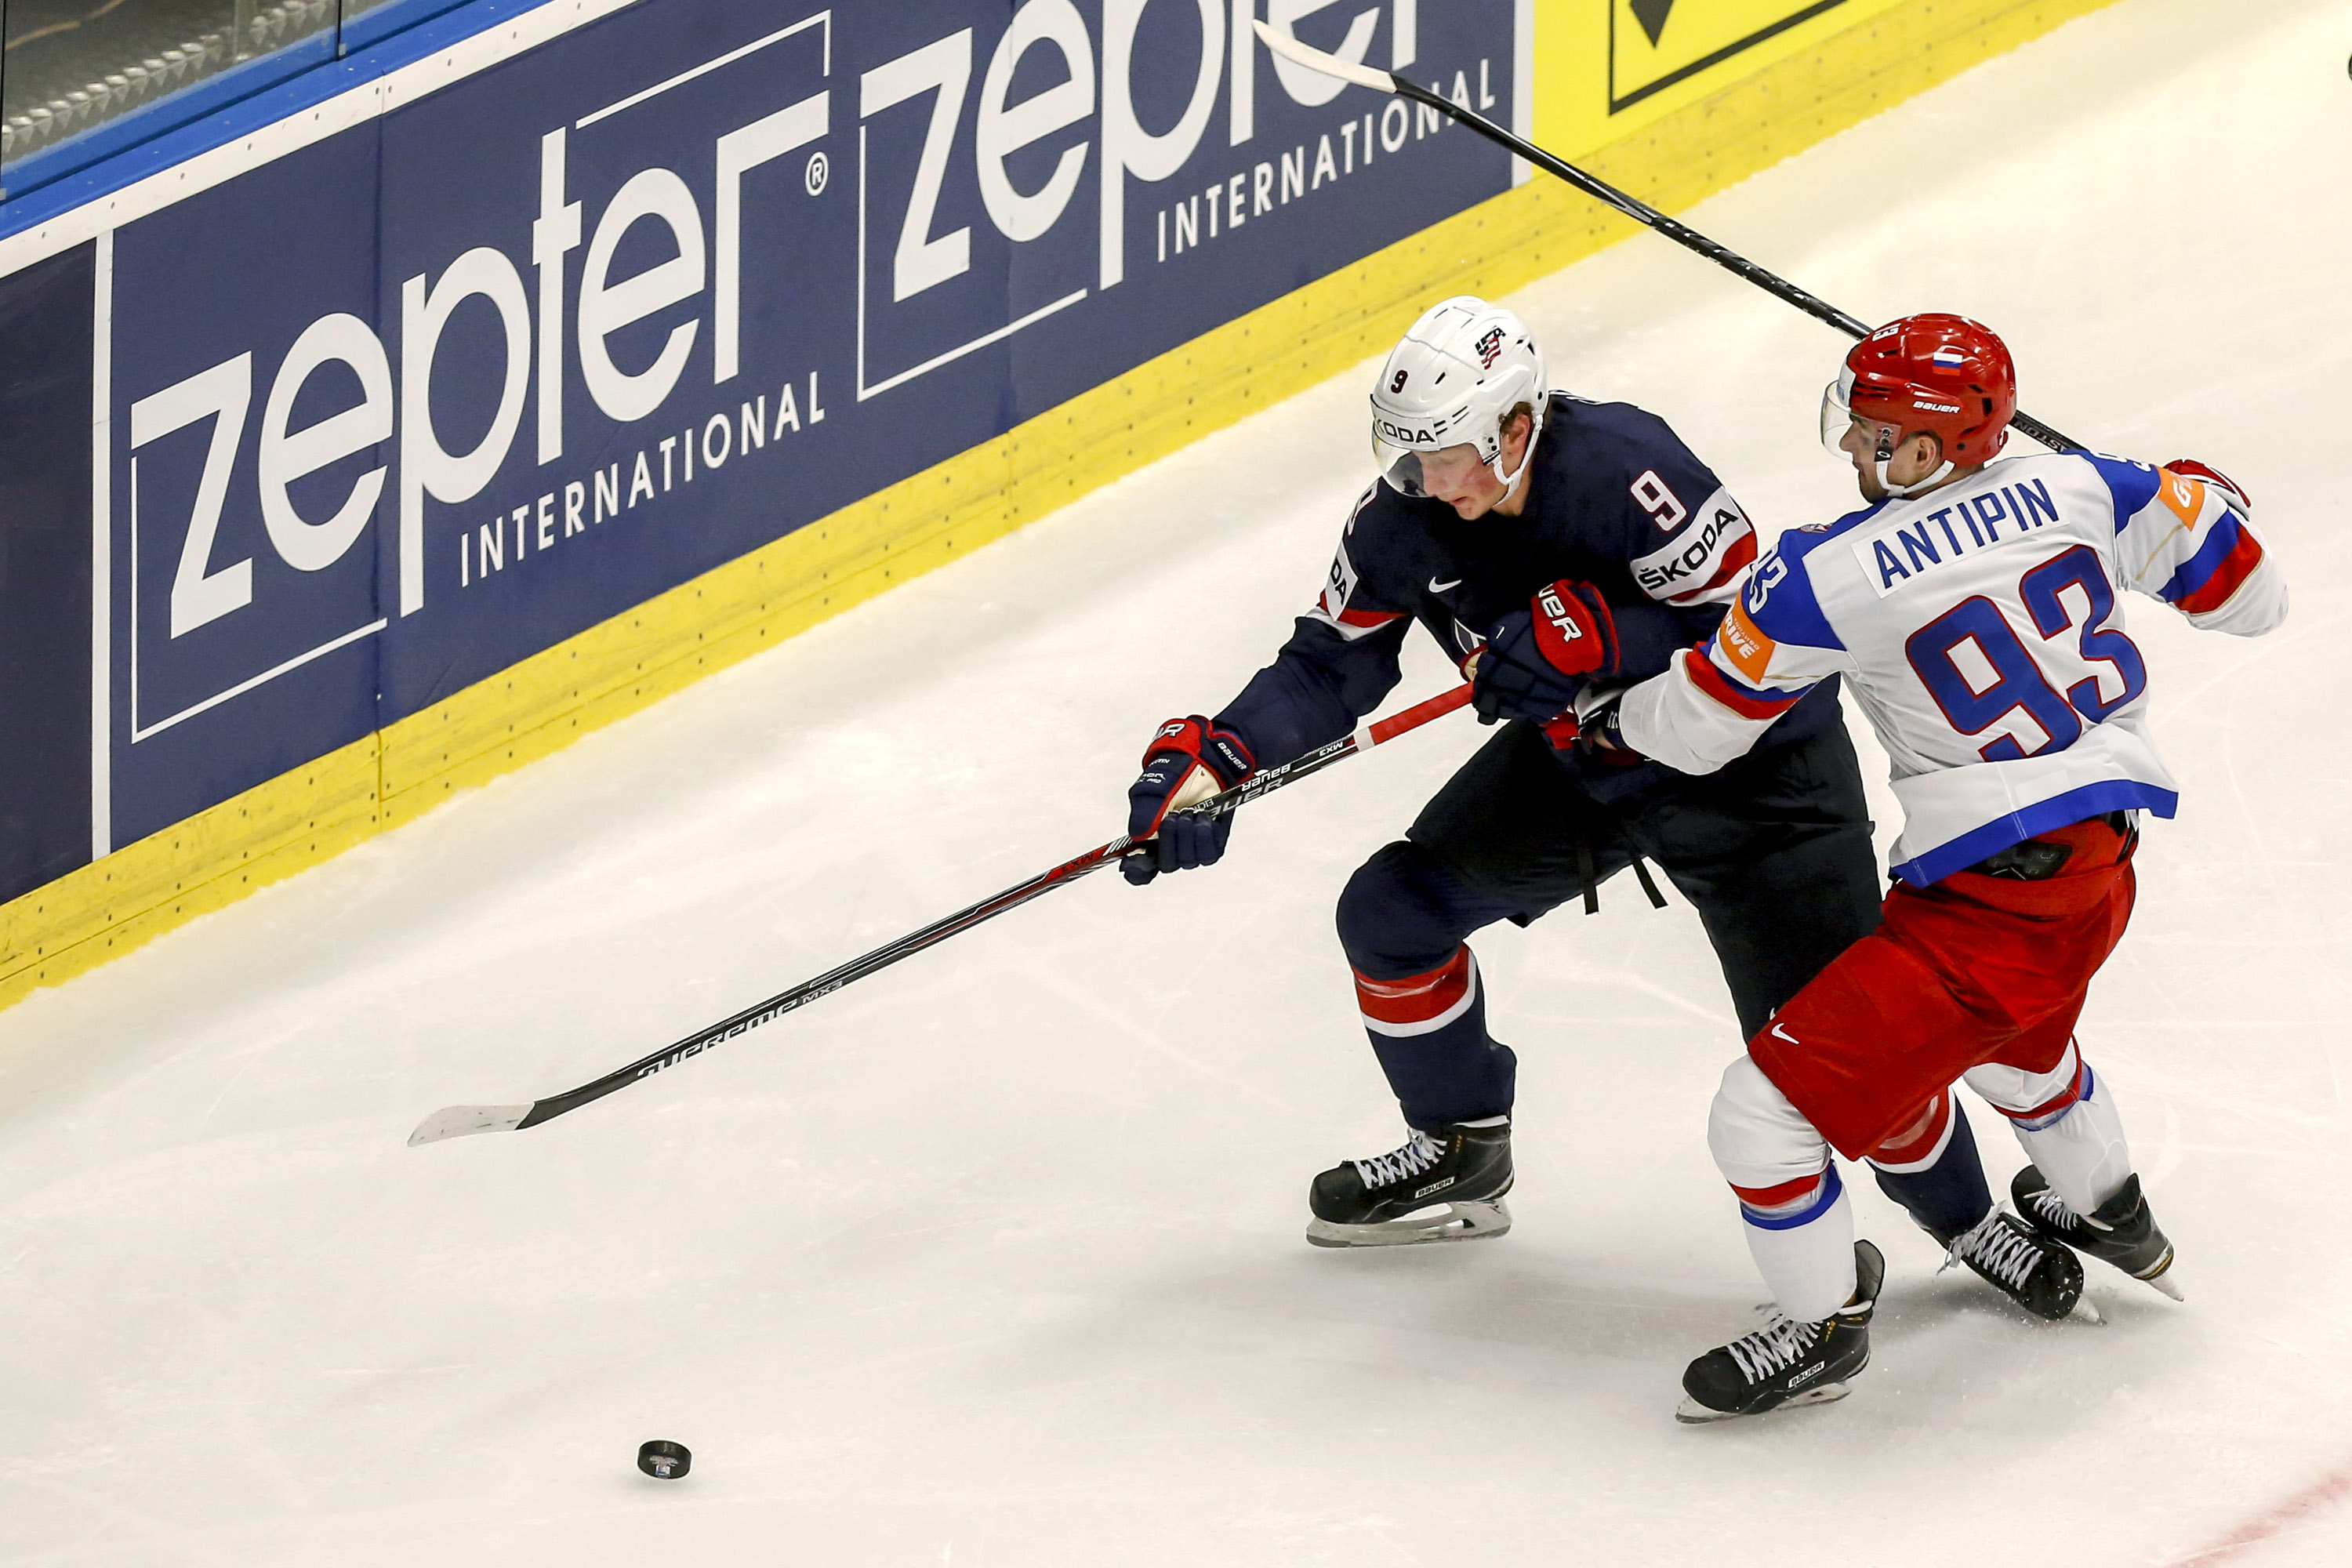 Russian defenseman Viktor Antipin battled with USA's Jack Eichel during the 2015 world championships. (Getty Images)